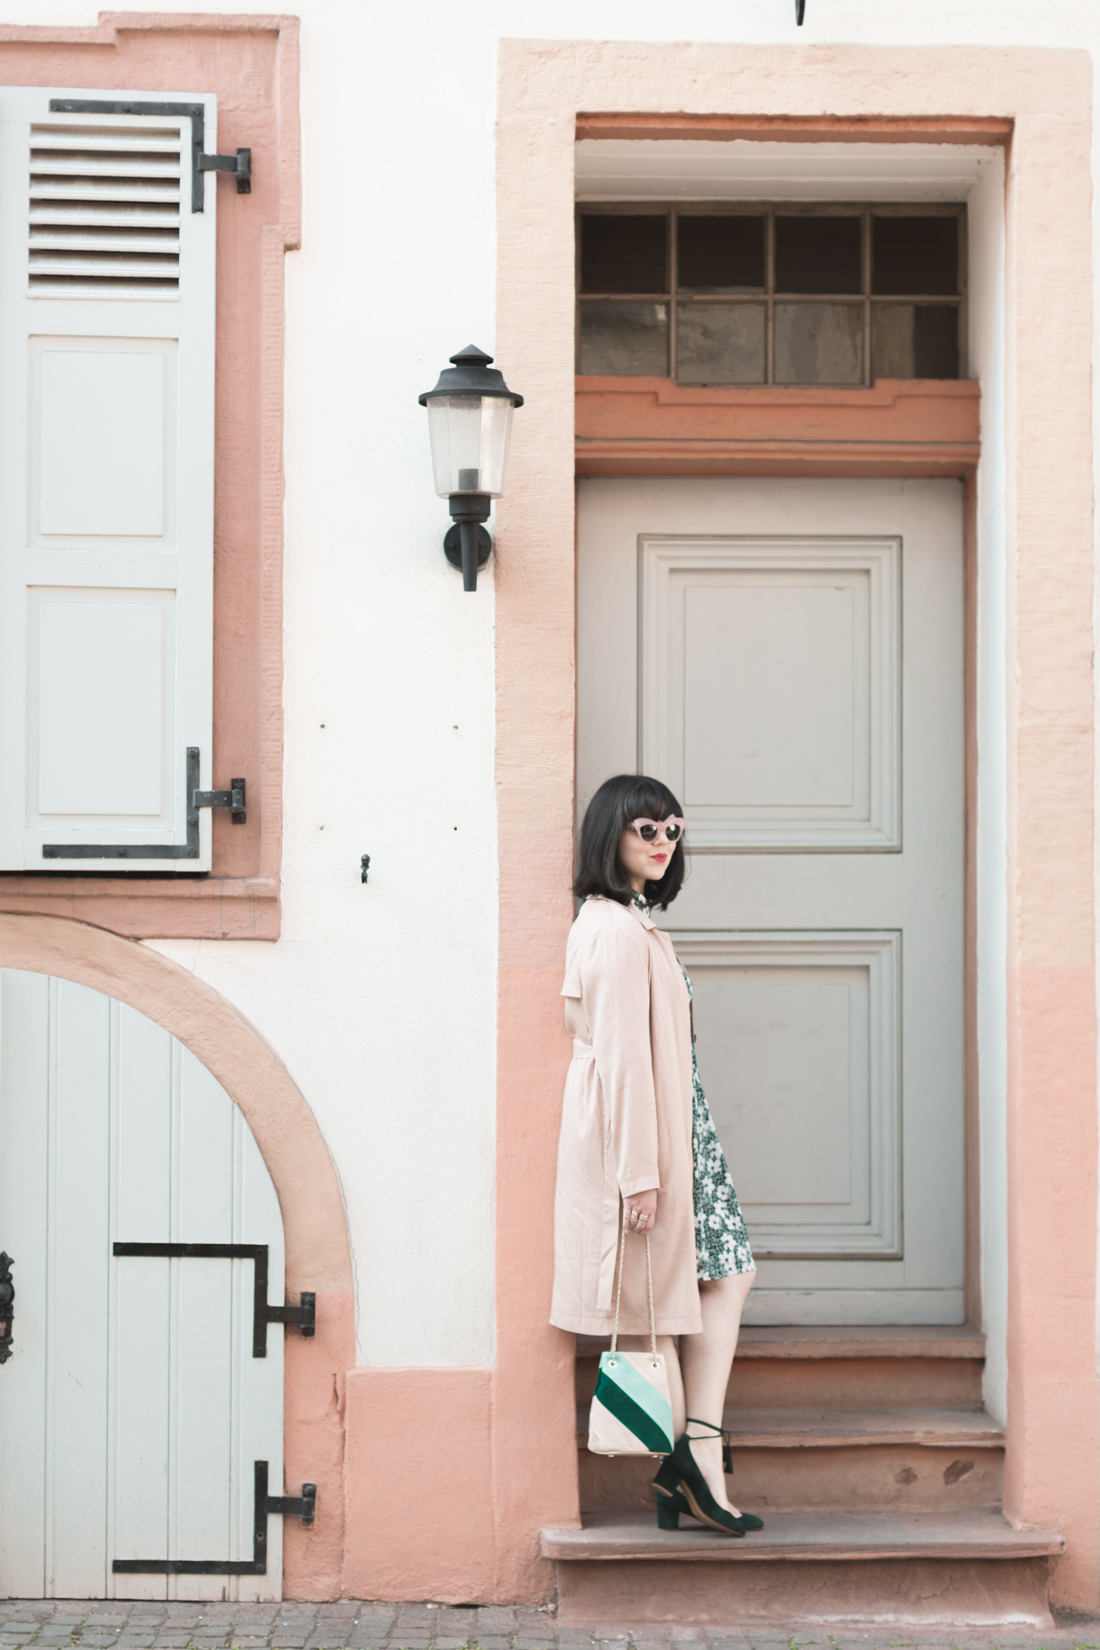 ybd_kelly_love_poppy_dress_bourse_hope_sezane_patchwork_copyright_Pauline_Privez_paulinefashionblog_com-3